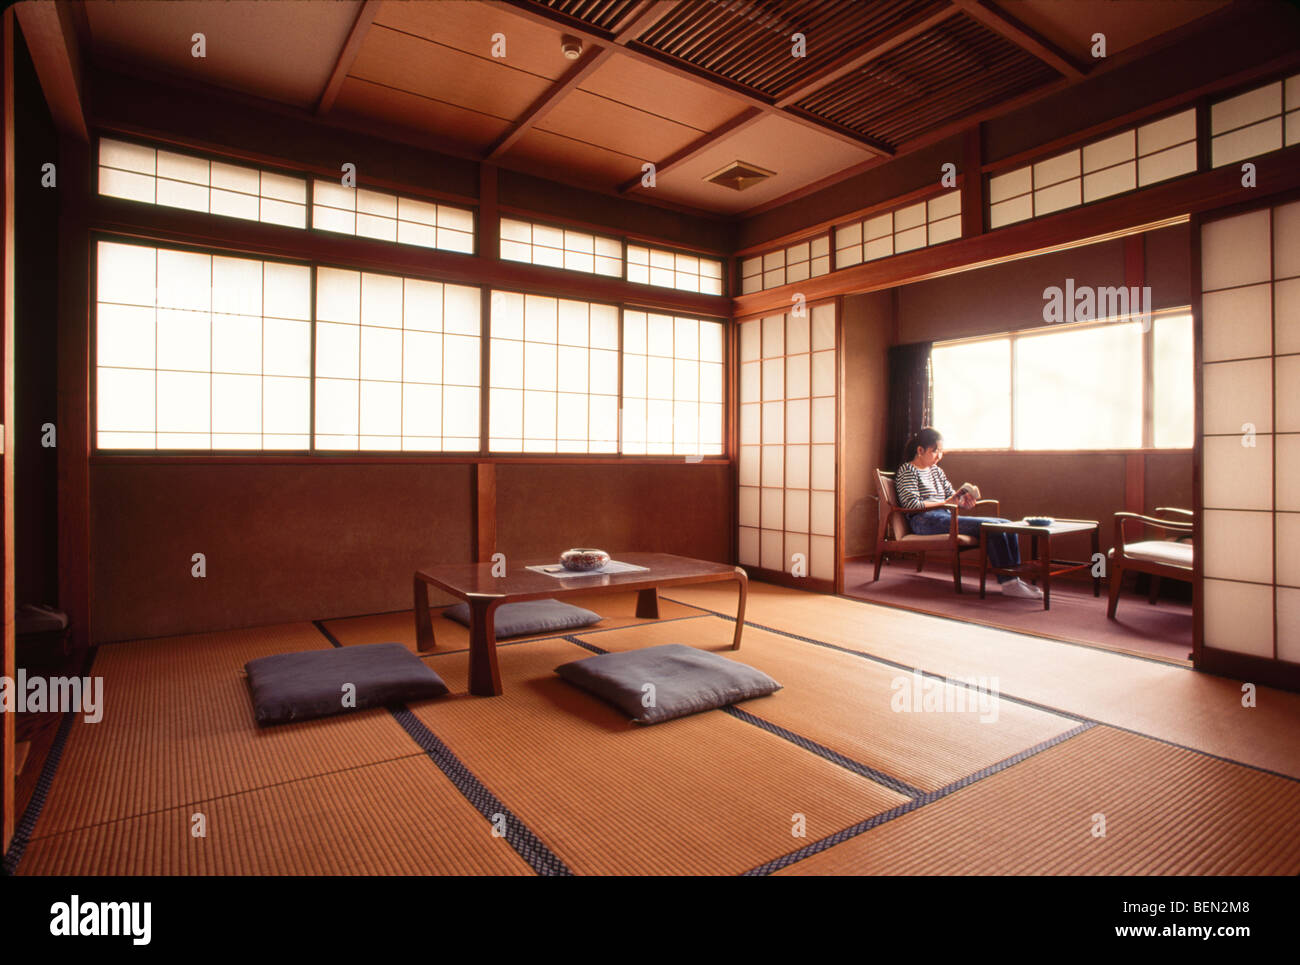 Interior of guest room at traditional Japanese inn, Ryokan Asakura, Shirone  city, Niigata Prefecture, Japan